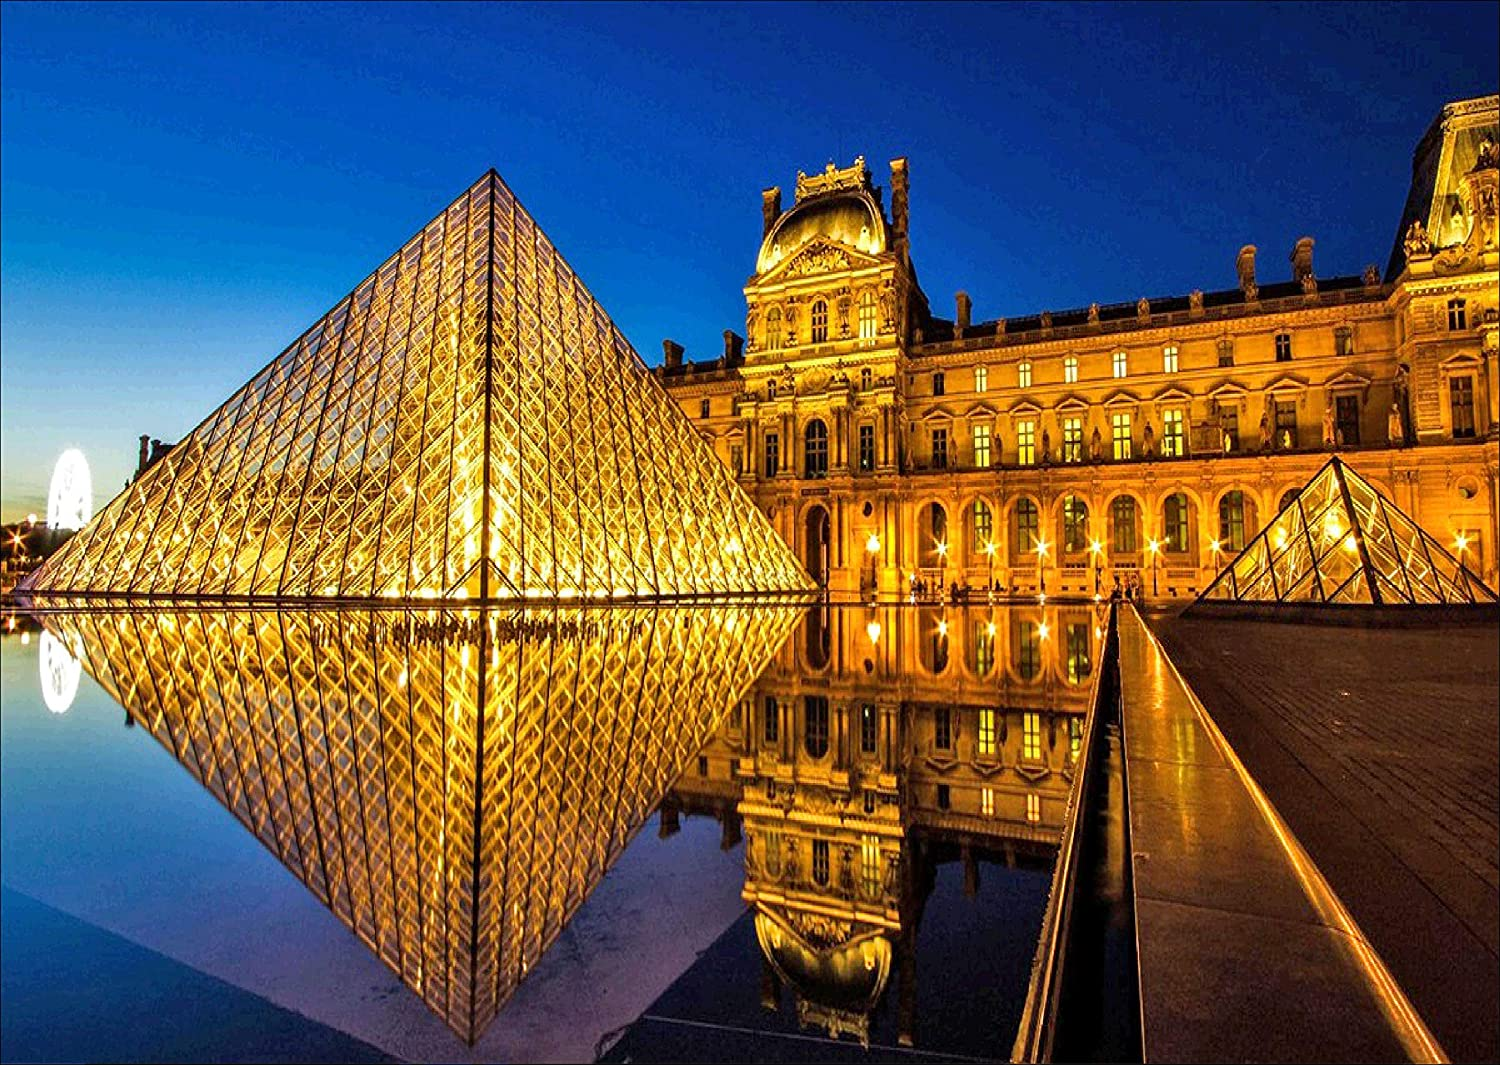 BELL CAT Paris Diamond Painting- Louvre Pyramid Diamond Painting Kits, Full Coverage, Round Rhinestone, DIY Art Supplies- Fun Gifts for Friends&Family, Adults&Children, Craftwork for Décor(q074)